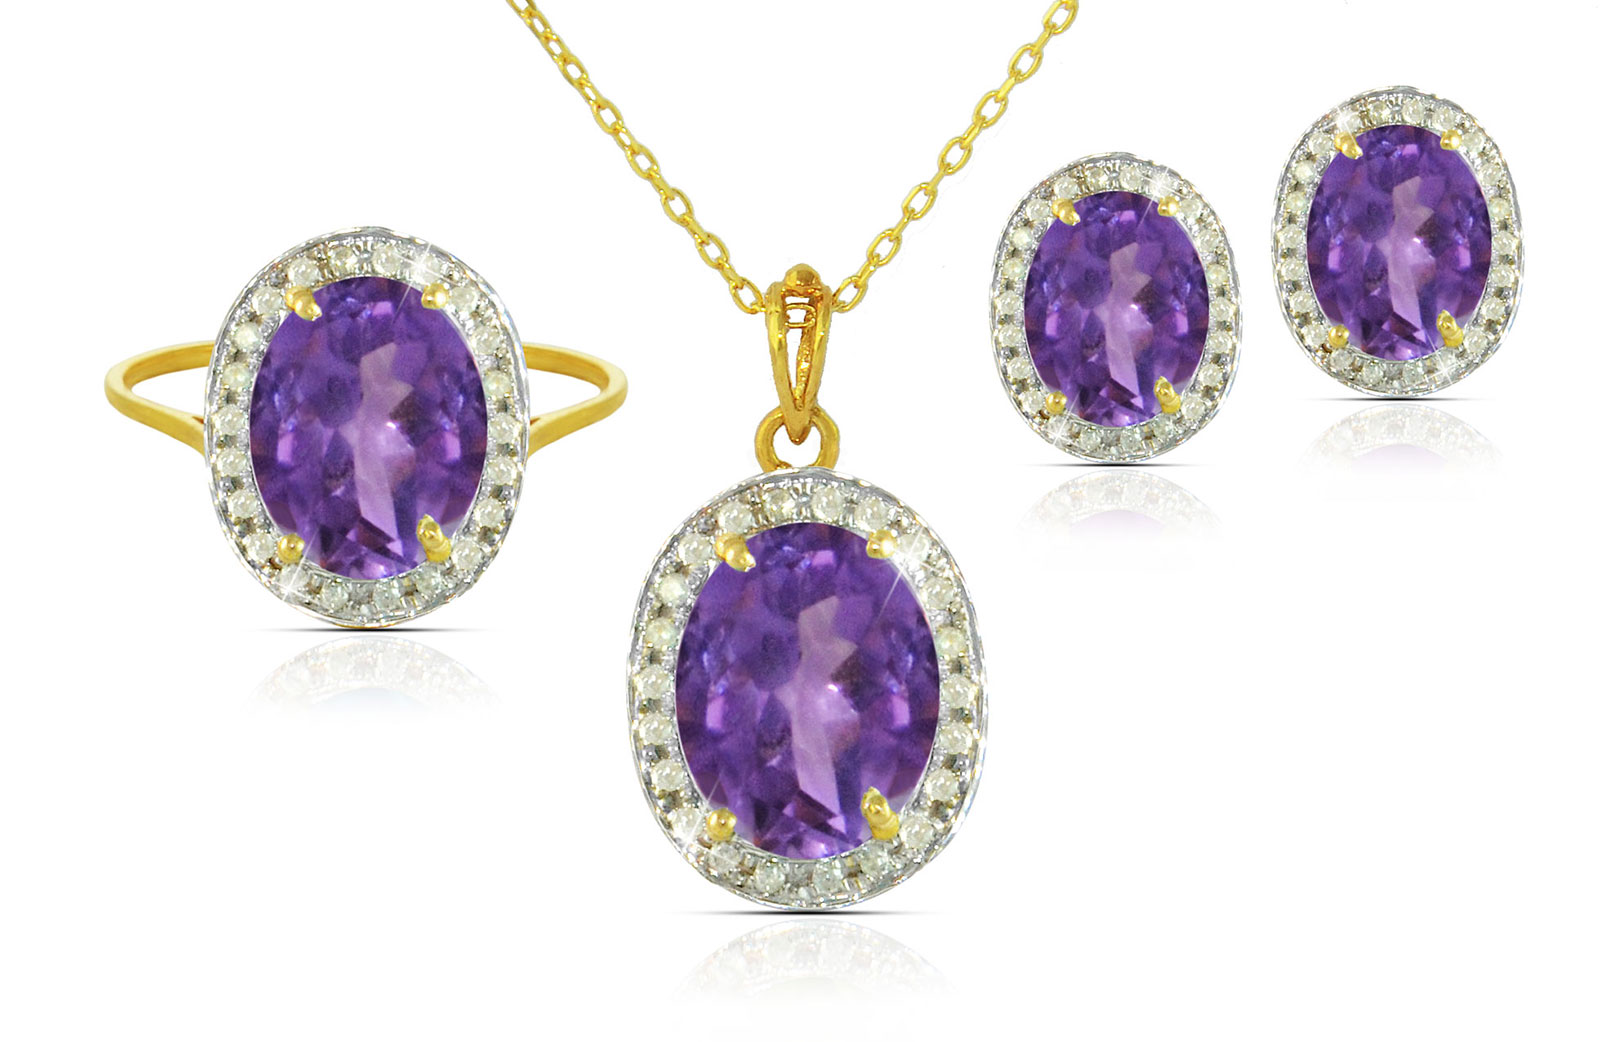 Vera Perla 18k  Gold 10mm Genuine Oval  Cut Amethyst 0.48Ct  Genuine Diamonds Jewelry Set